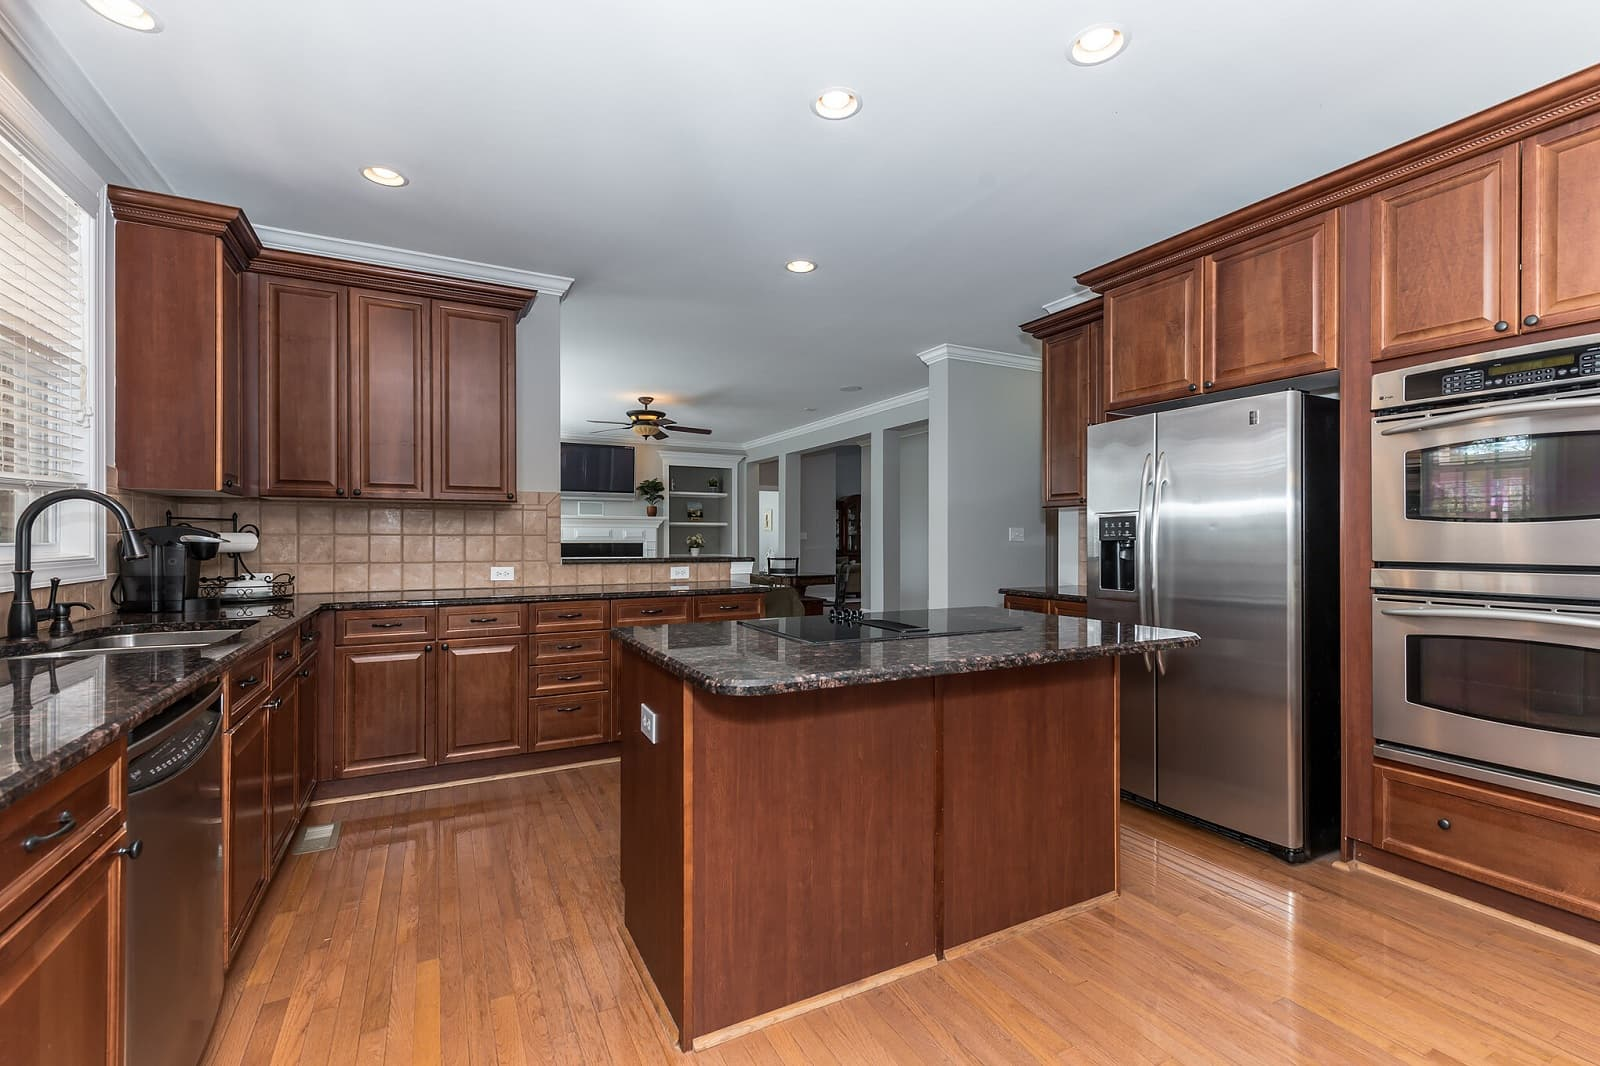 Real Estate Photography in Matthews - NC - USA - Kitchen View